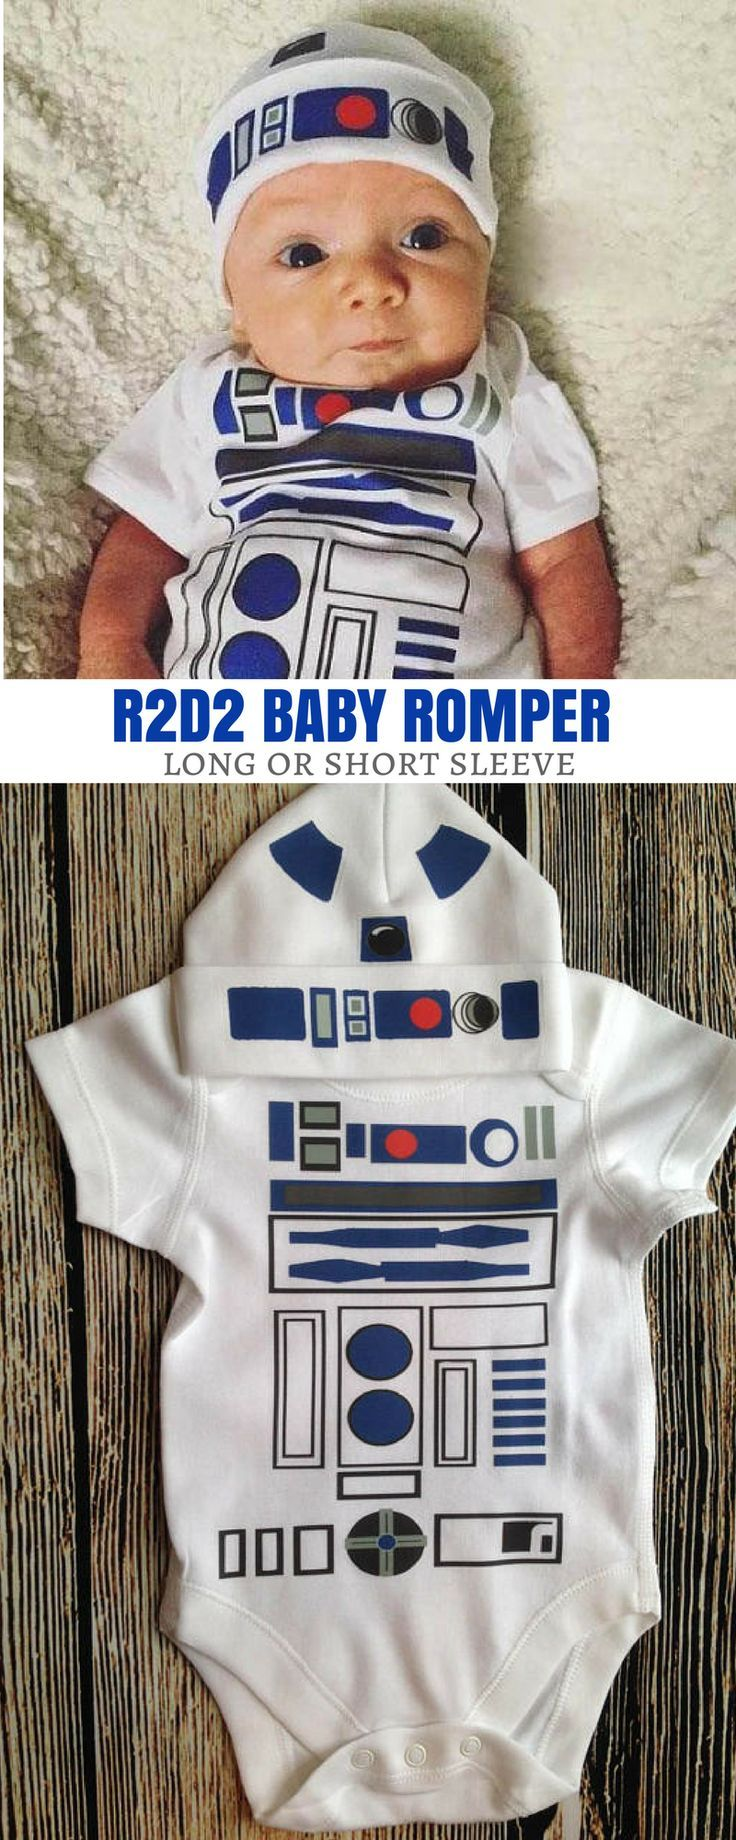 Beep-Bop the cutest R2D2 baby romper. I will definitely get this baby bodysuit for my little one. #commissionlink #starwars #r2d2 #romper #bodysuit #baby #geekbaby